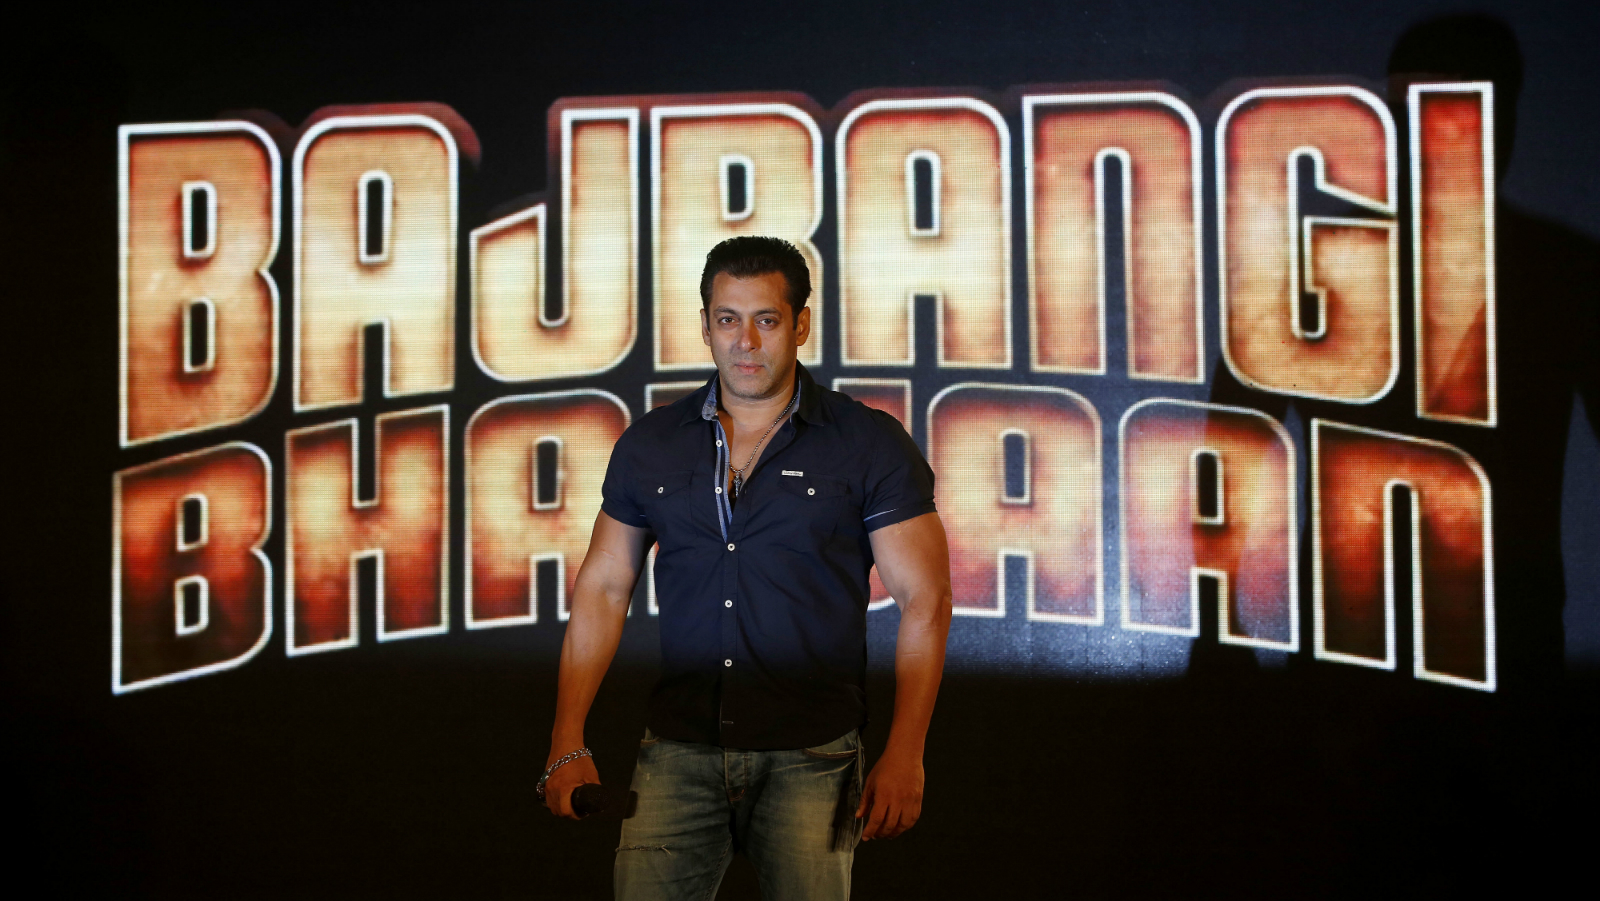 Bollywood actor Salman Khan poses for media during the launch of songs for his upcoming movie, Bajrangi Bhaijaan, in Mumbai, India, Friday, July 3, 2015. (AP Photo/Rajanish Kakade)